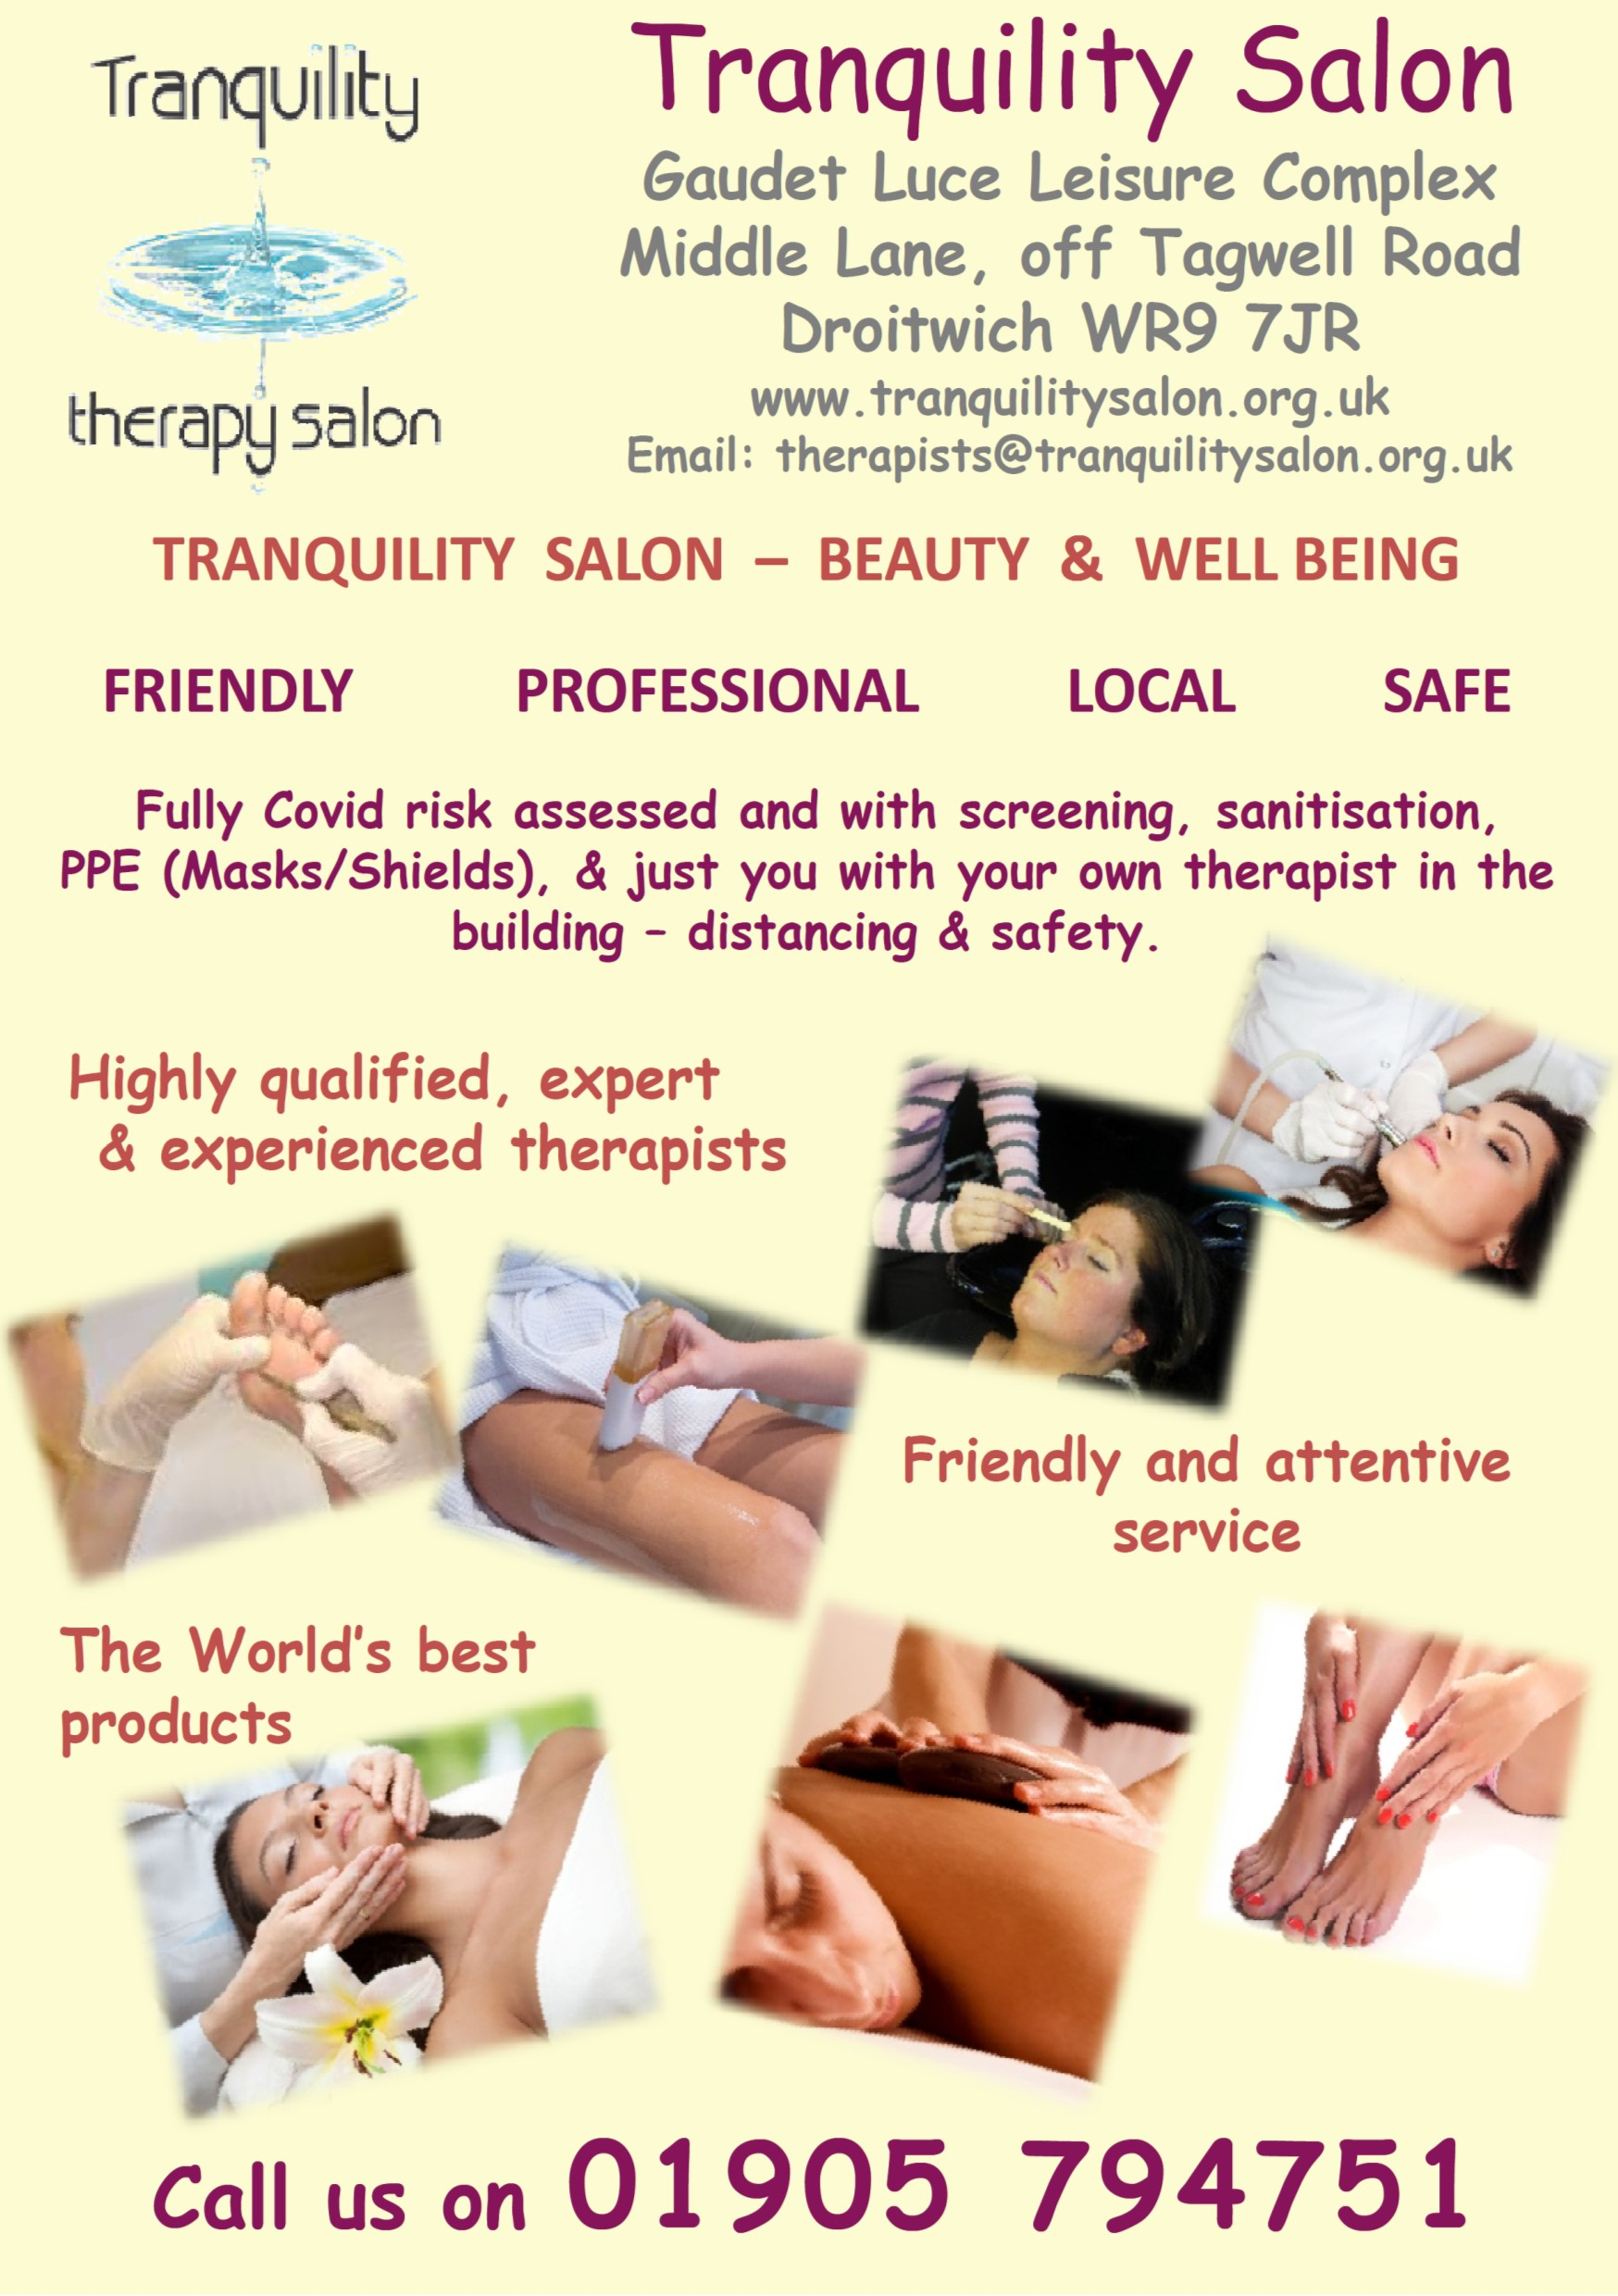 Tranquility Salon Droitwich